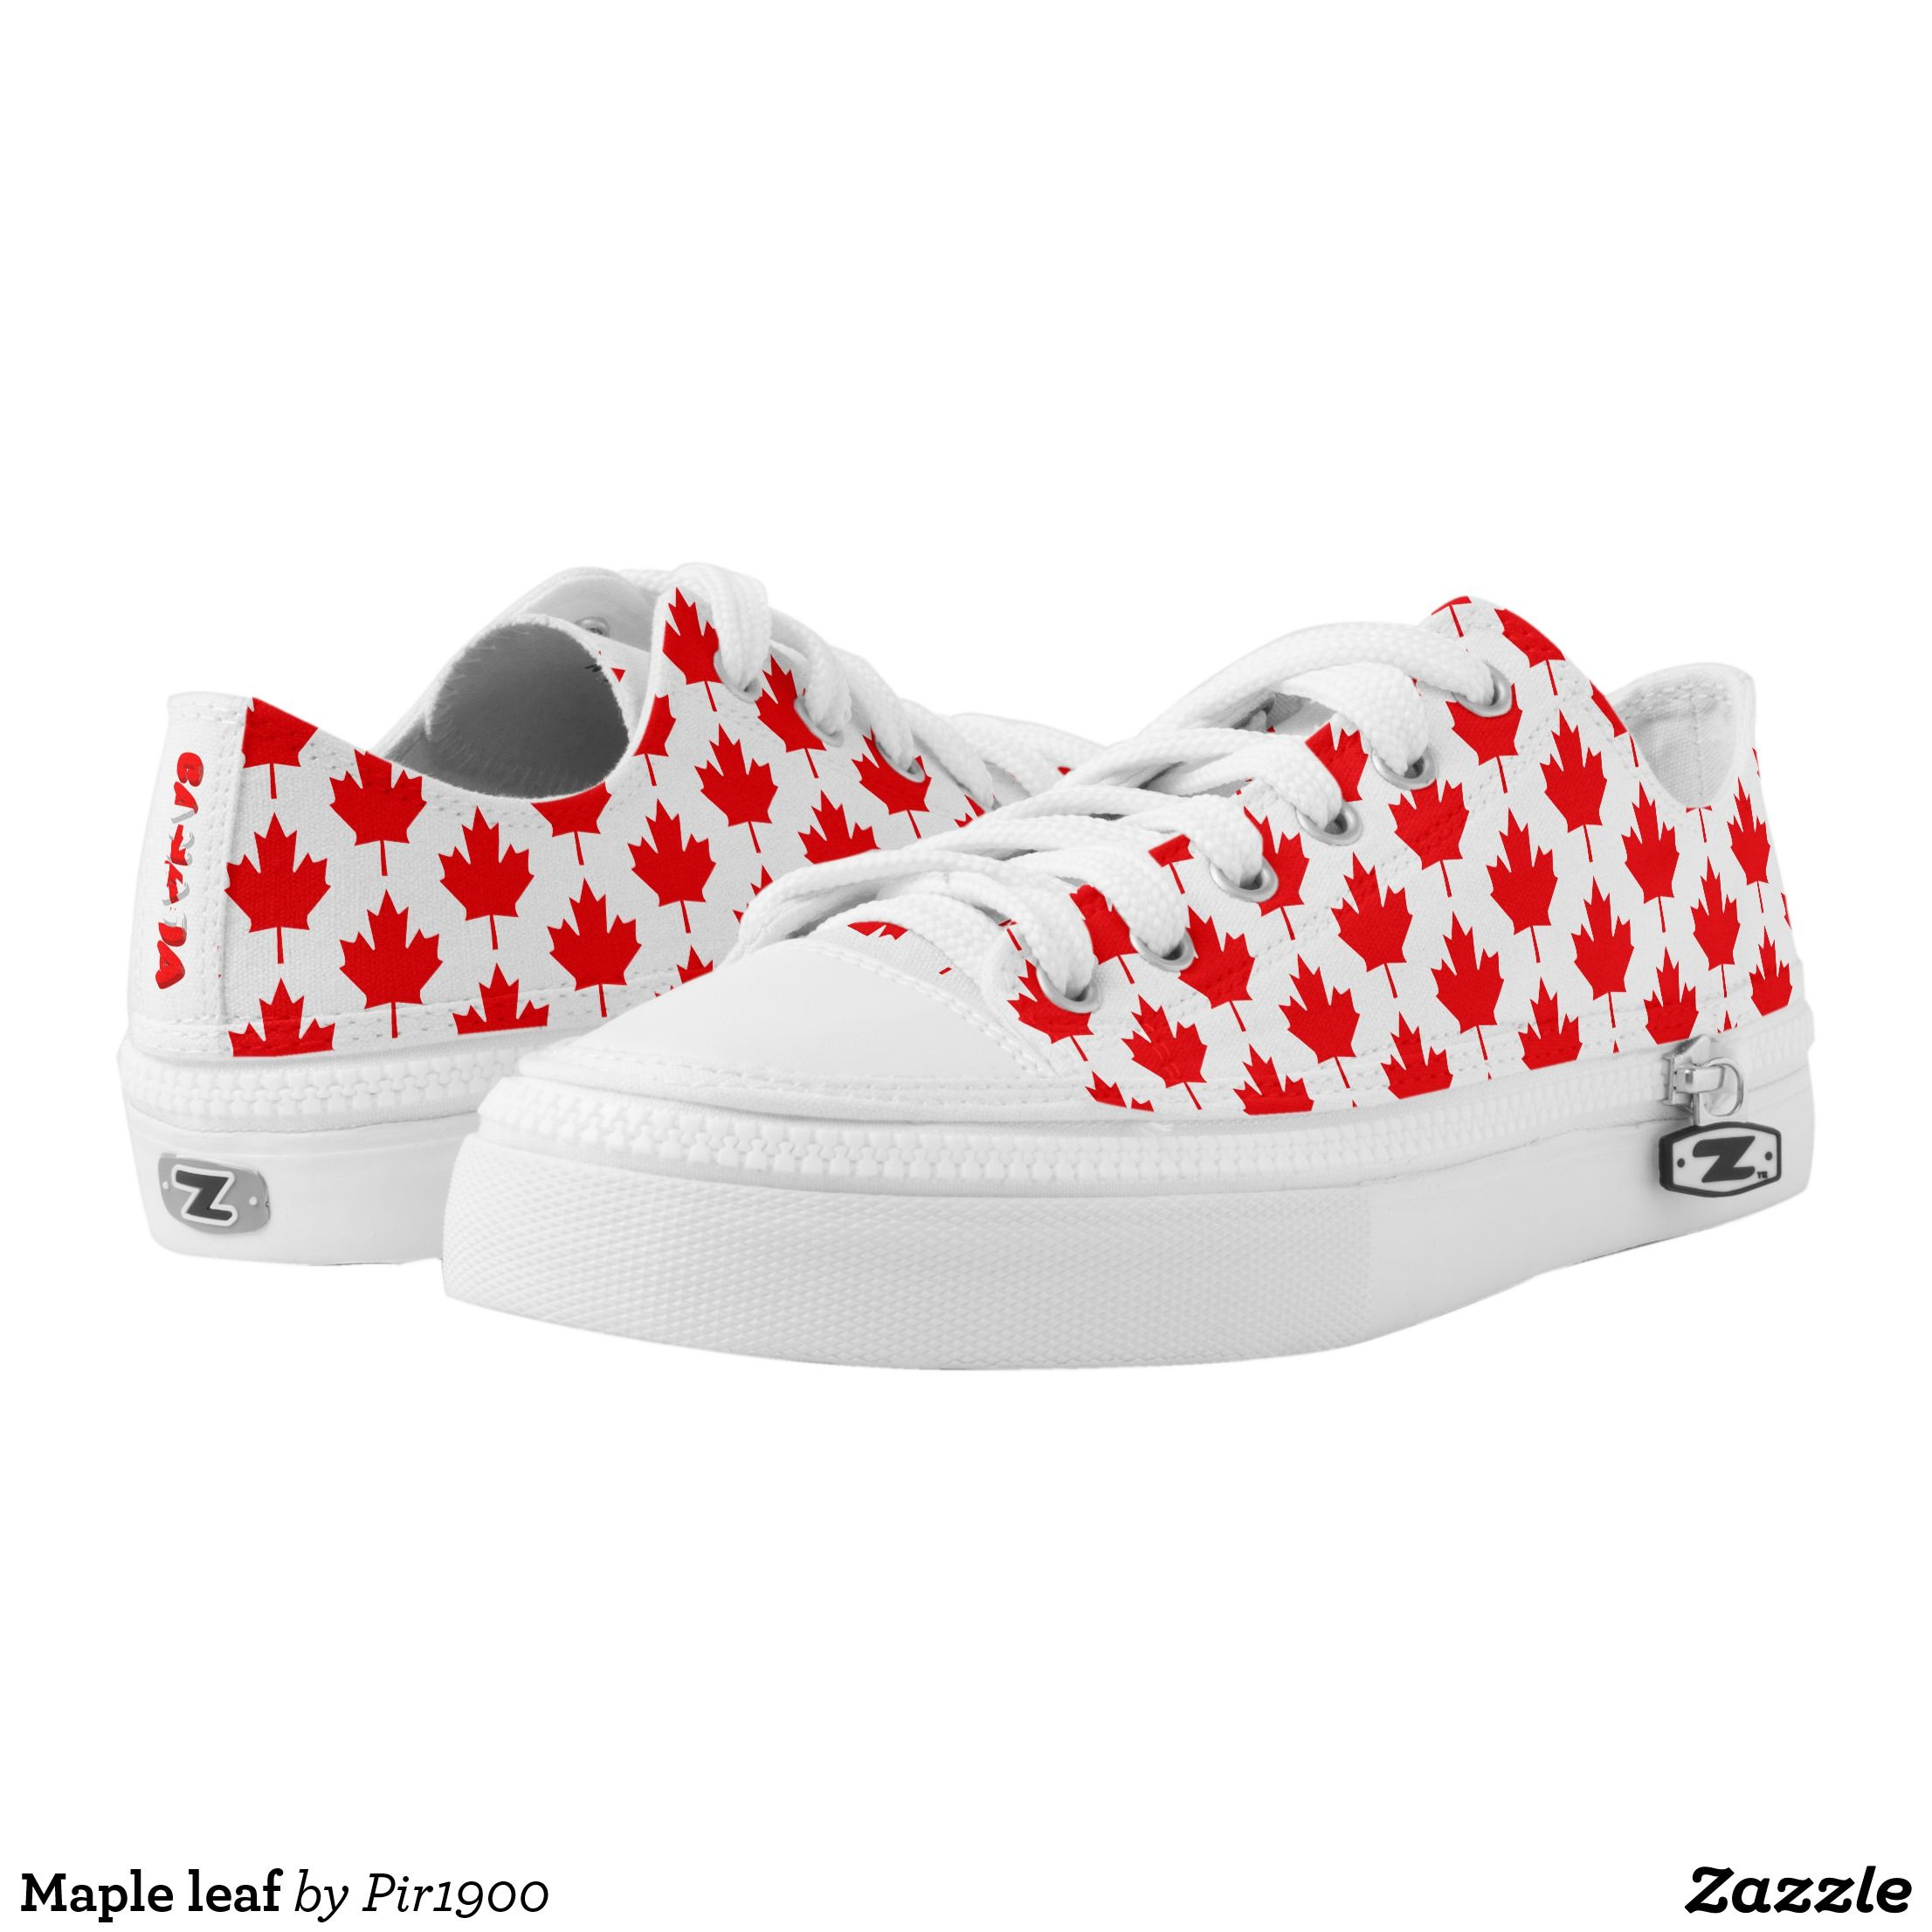 41b9422fa49d Maple leaf Low-Top sneakers - Canvas-Top Rubber-Sole Athletic Shoes By  Talented Fashion And Graphic Designers -  shoes  sneakers  footwear   mensfashion ...